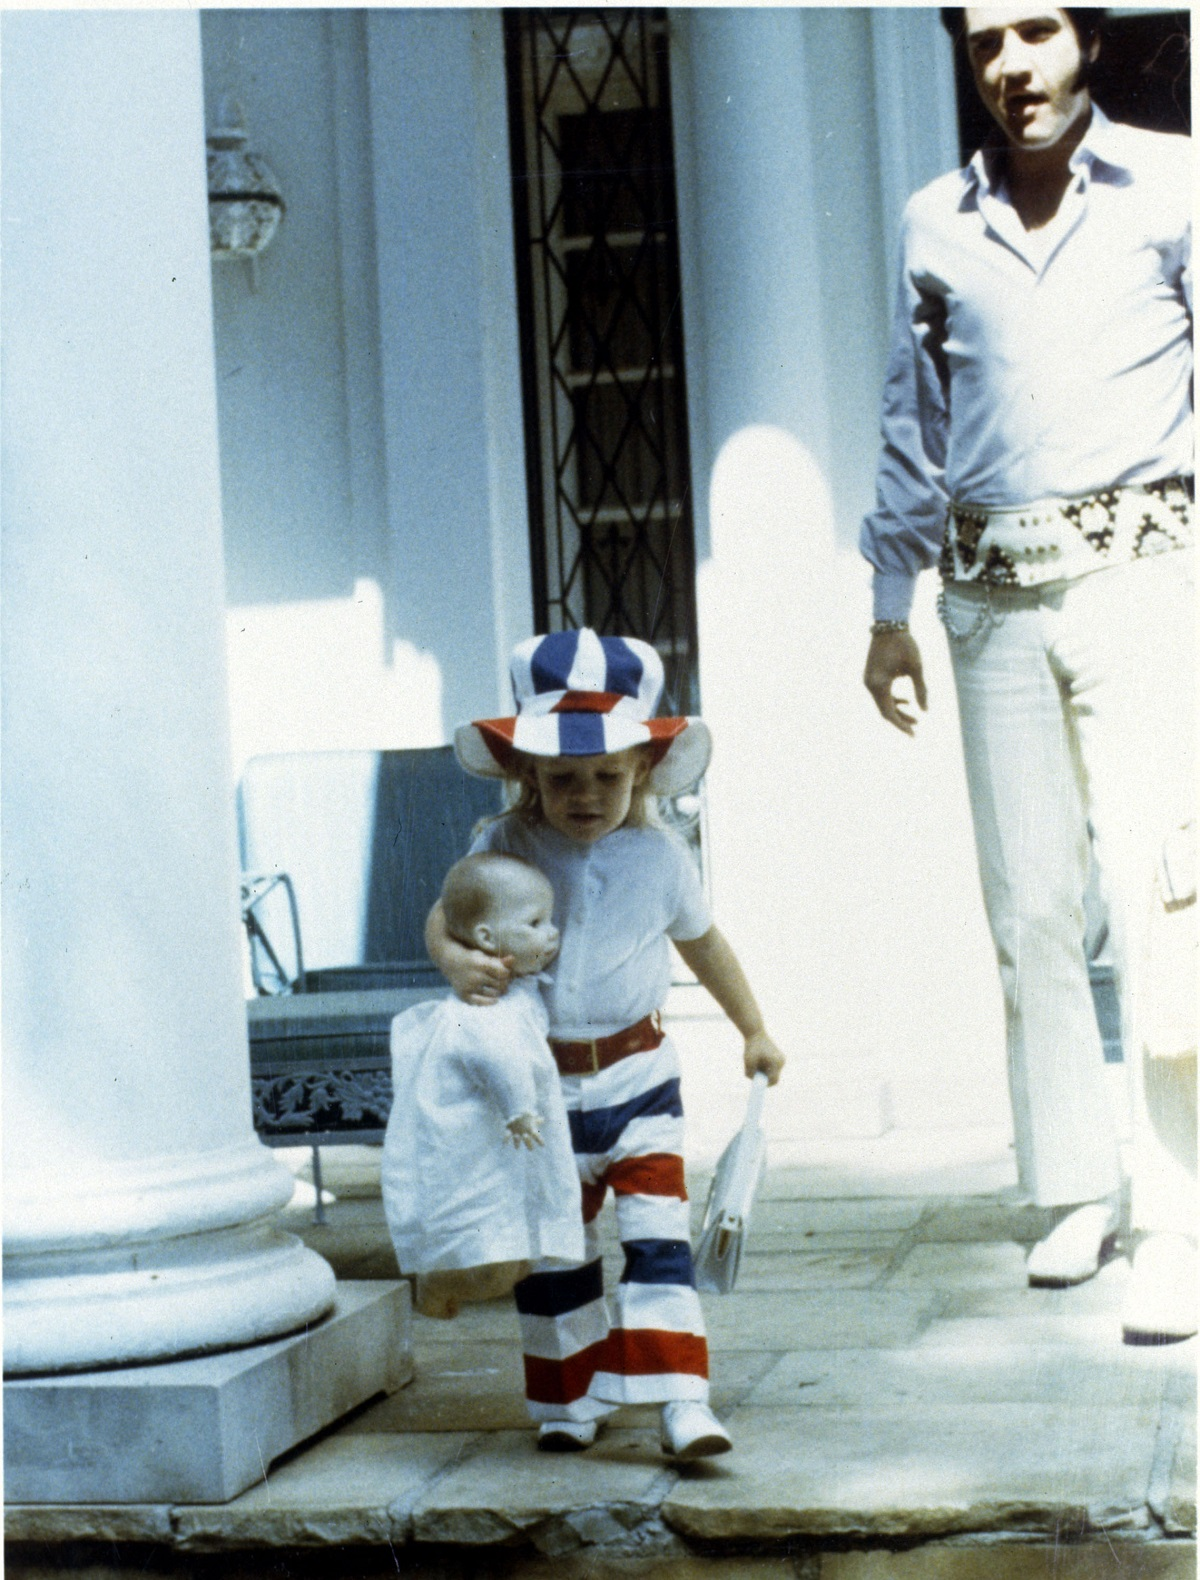 Lisa Marie Presley as a child with a doll with Elvis Presley in the background in a candid shot